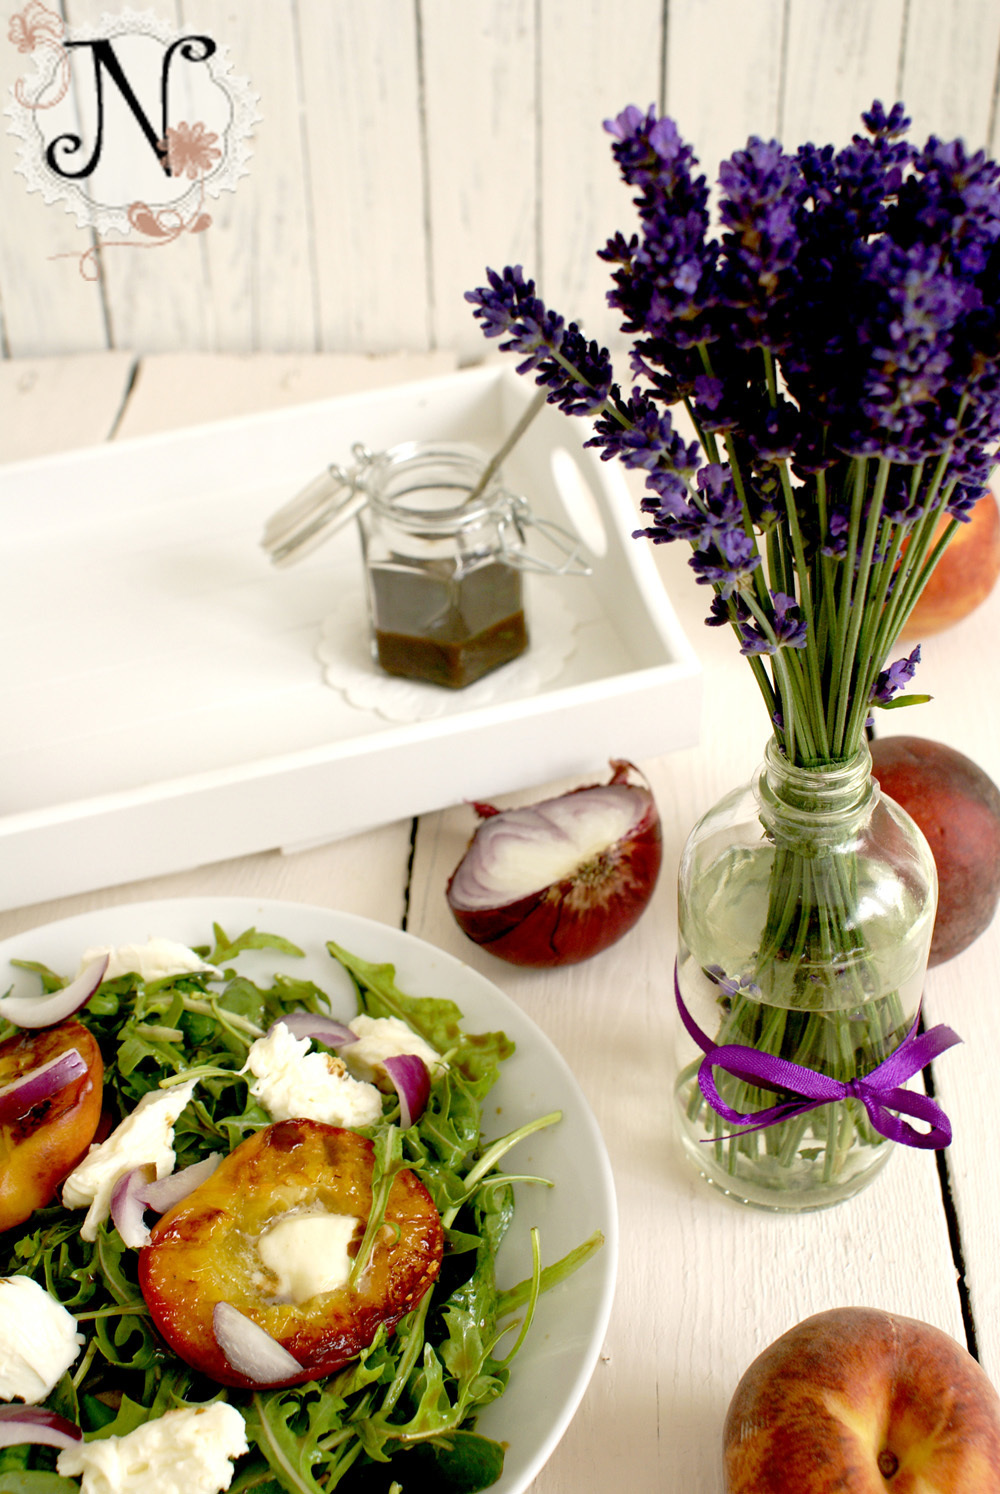 Healthy recipe: Grilled Peach Salad with Buffalo Mozzarella and Arugula / Solata s pecenimi breskvami, mocarelo in rukolo